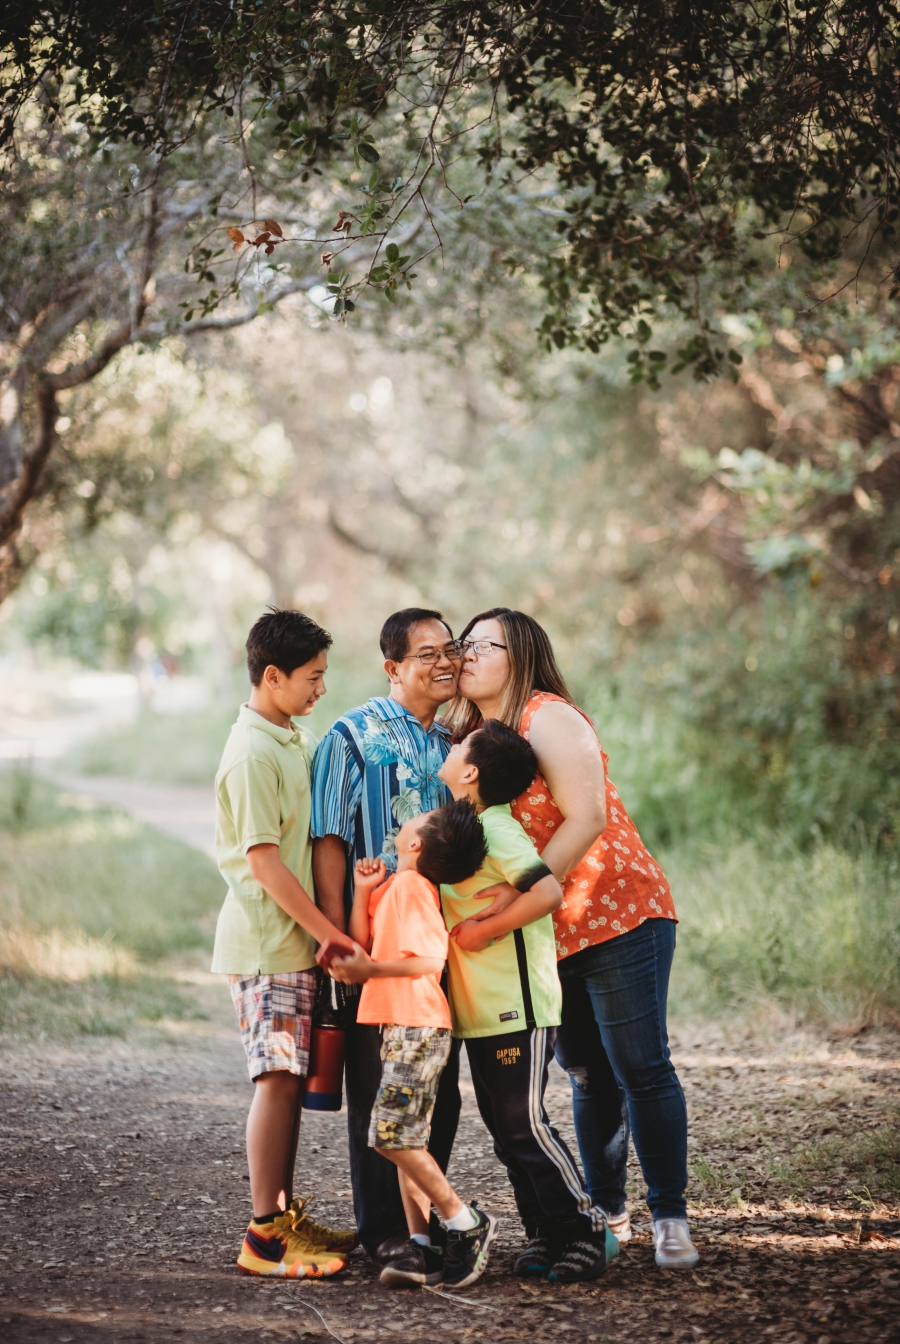 SUN FAMILY AT GARIN PARK - EAST BAY LIFESTYLE PHOTOGRAPHY 1.jpg